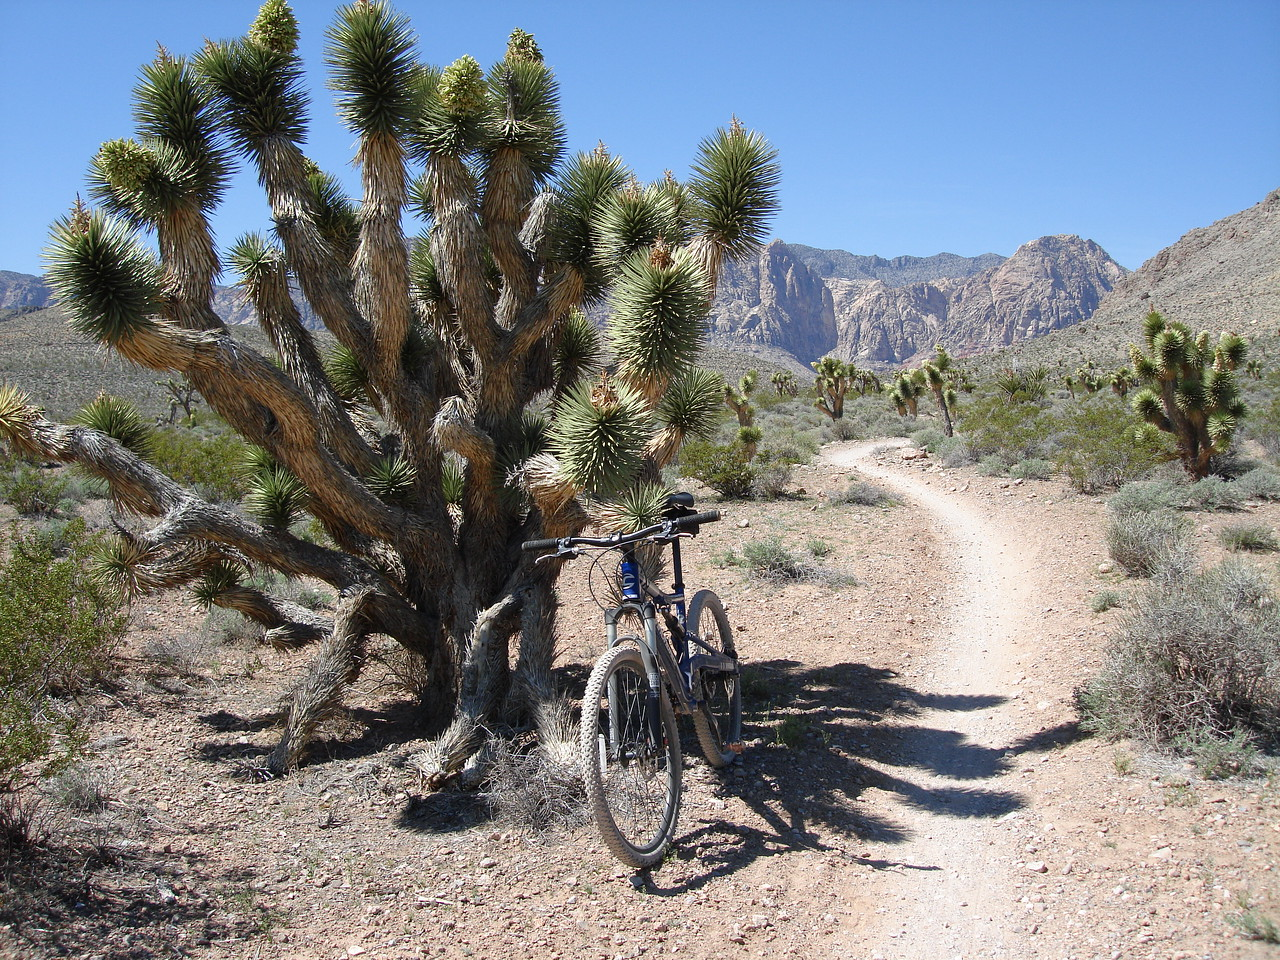 Joshua Tree - On my way back to catch up the group.